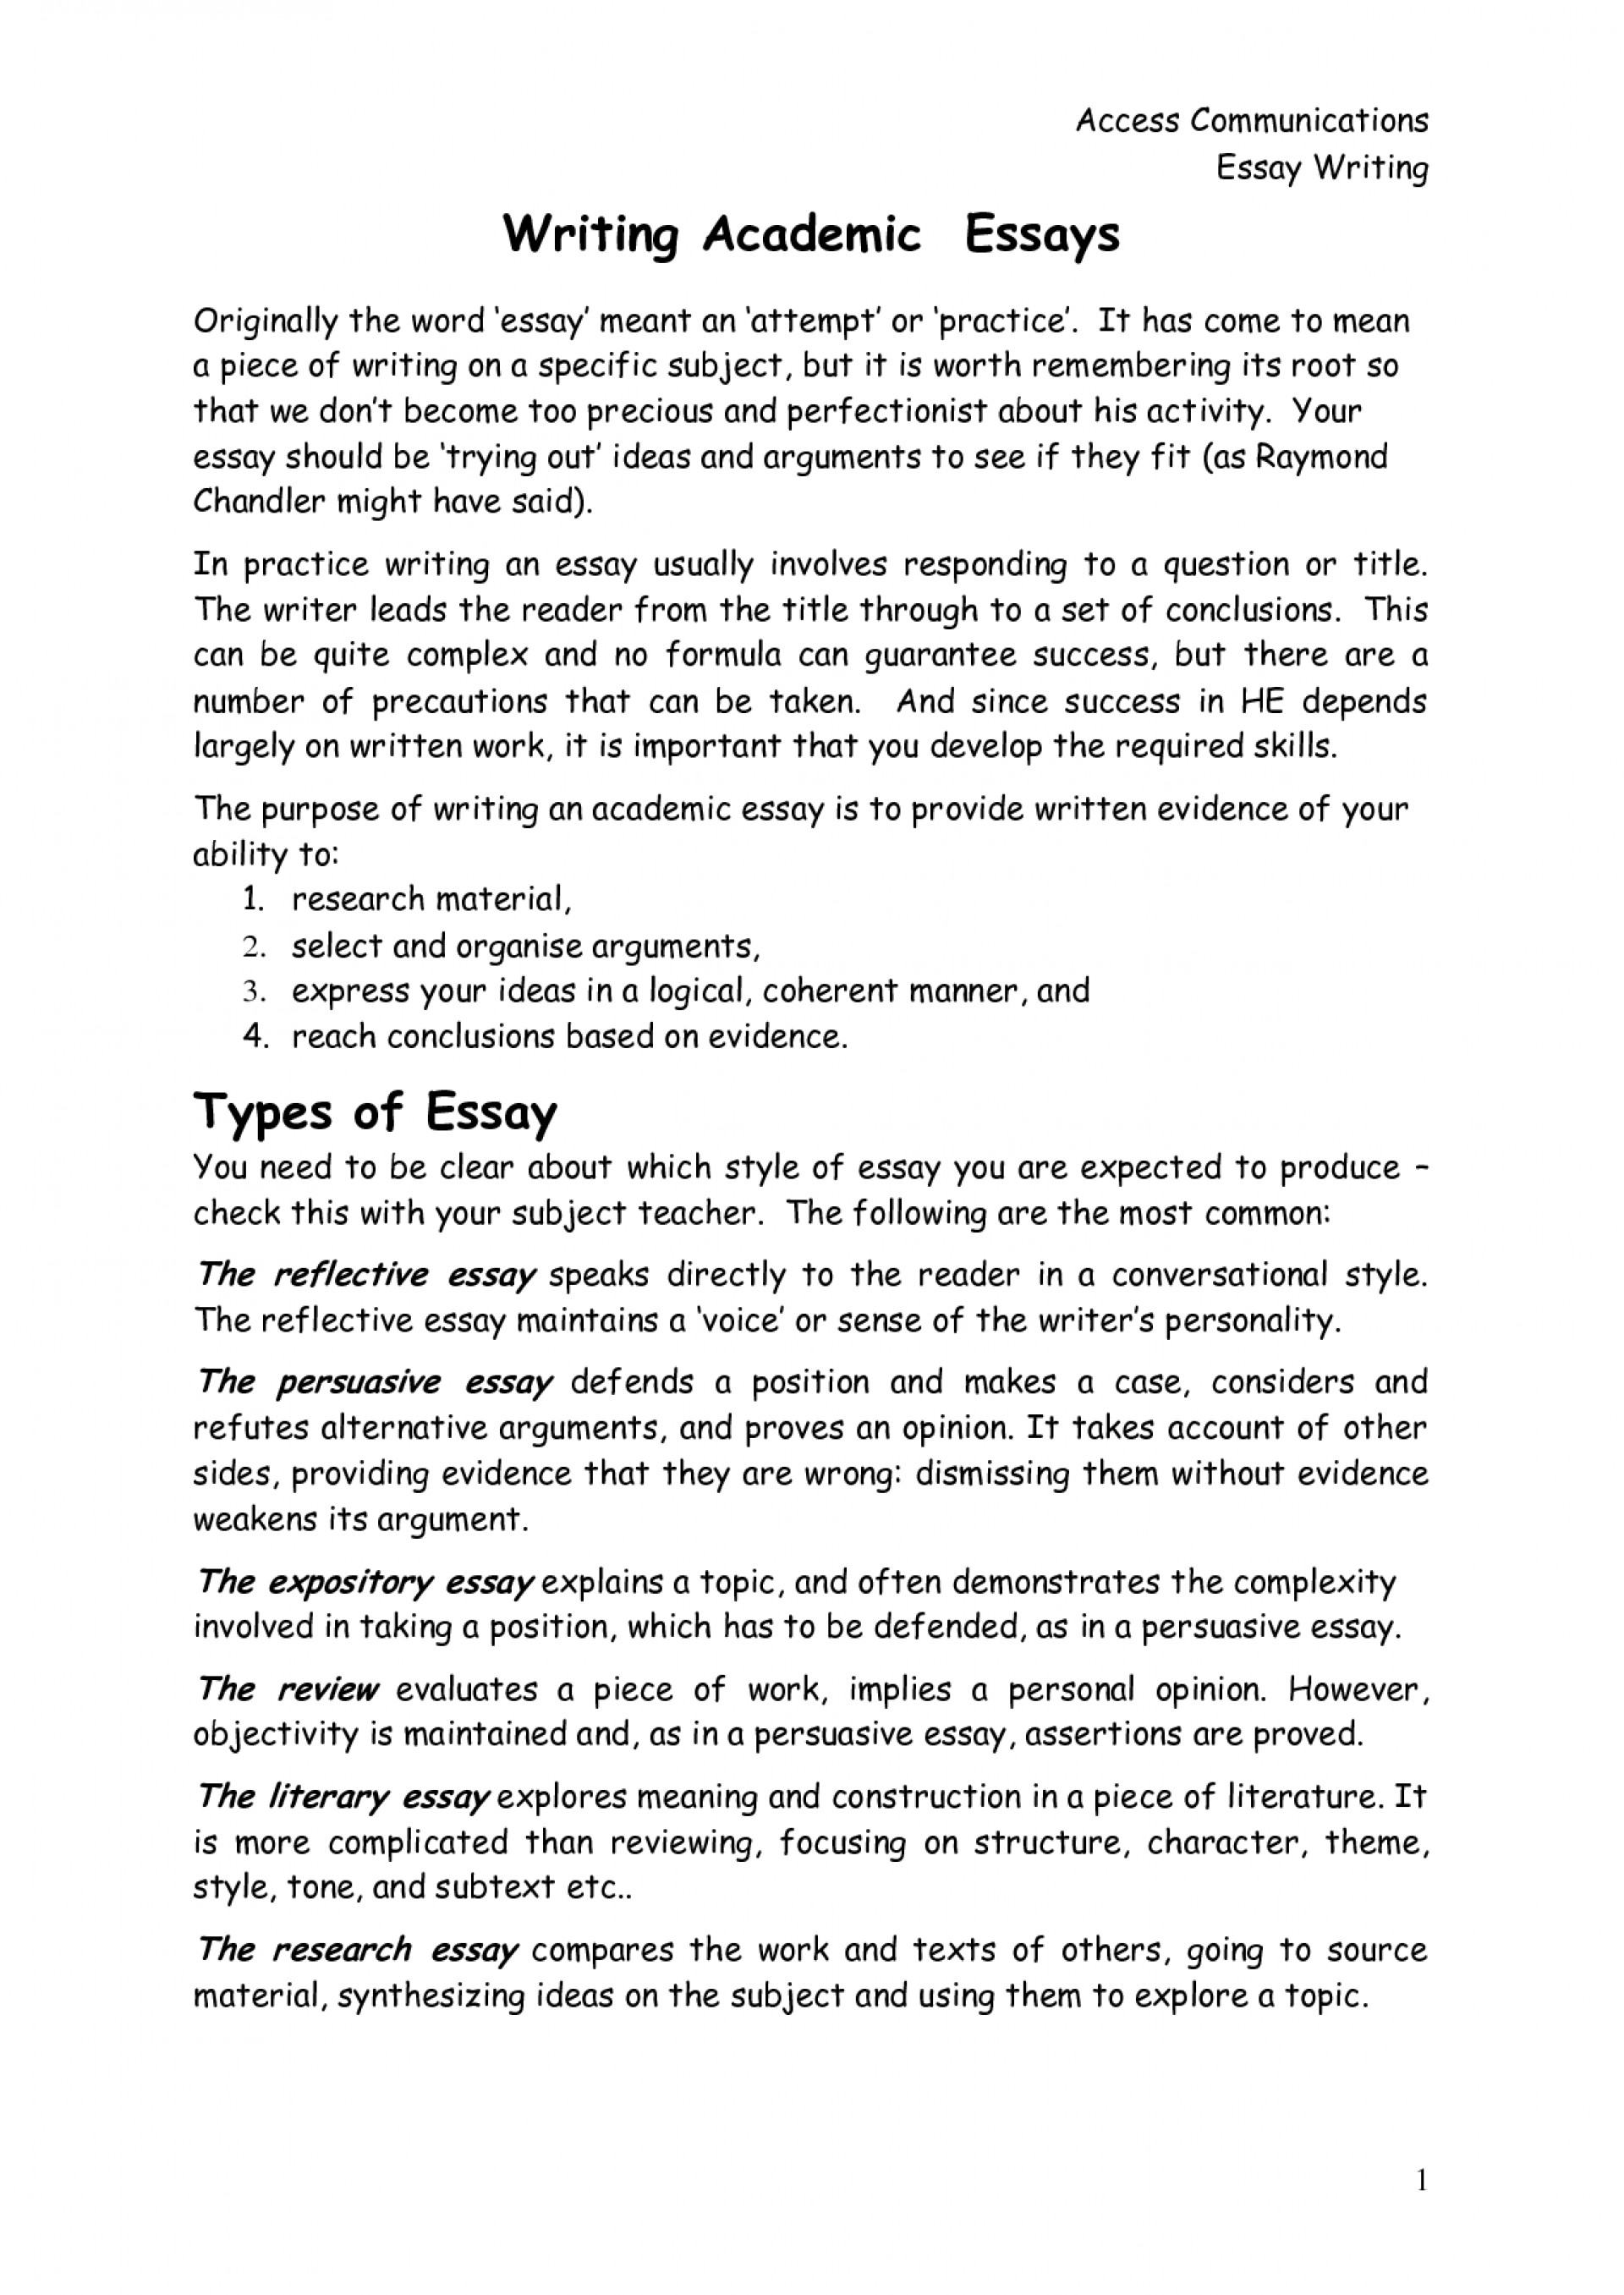 016 Reflective Essay On Academic Writings Beautiful Examples For Middle School Apa High 1920